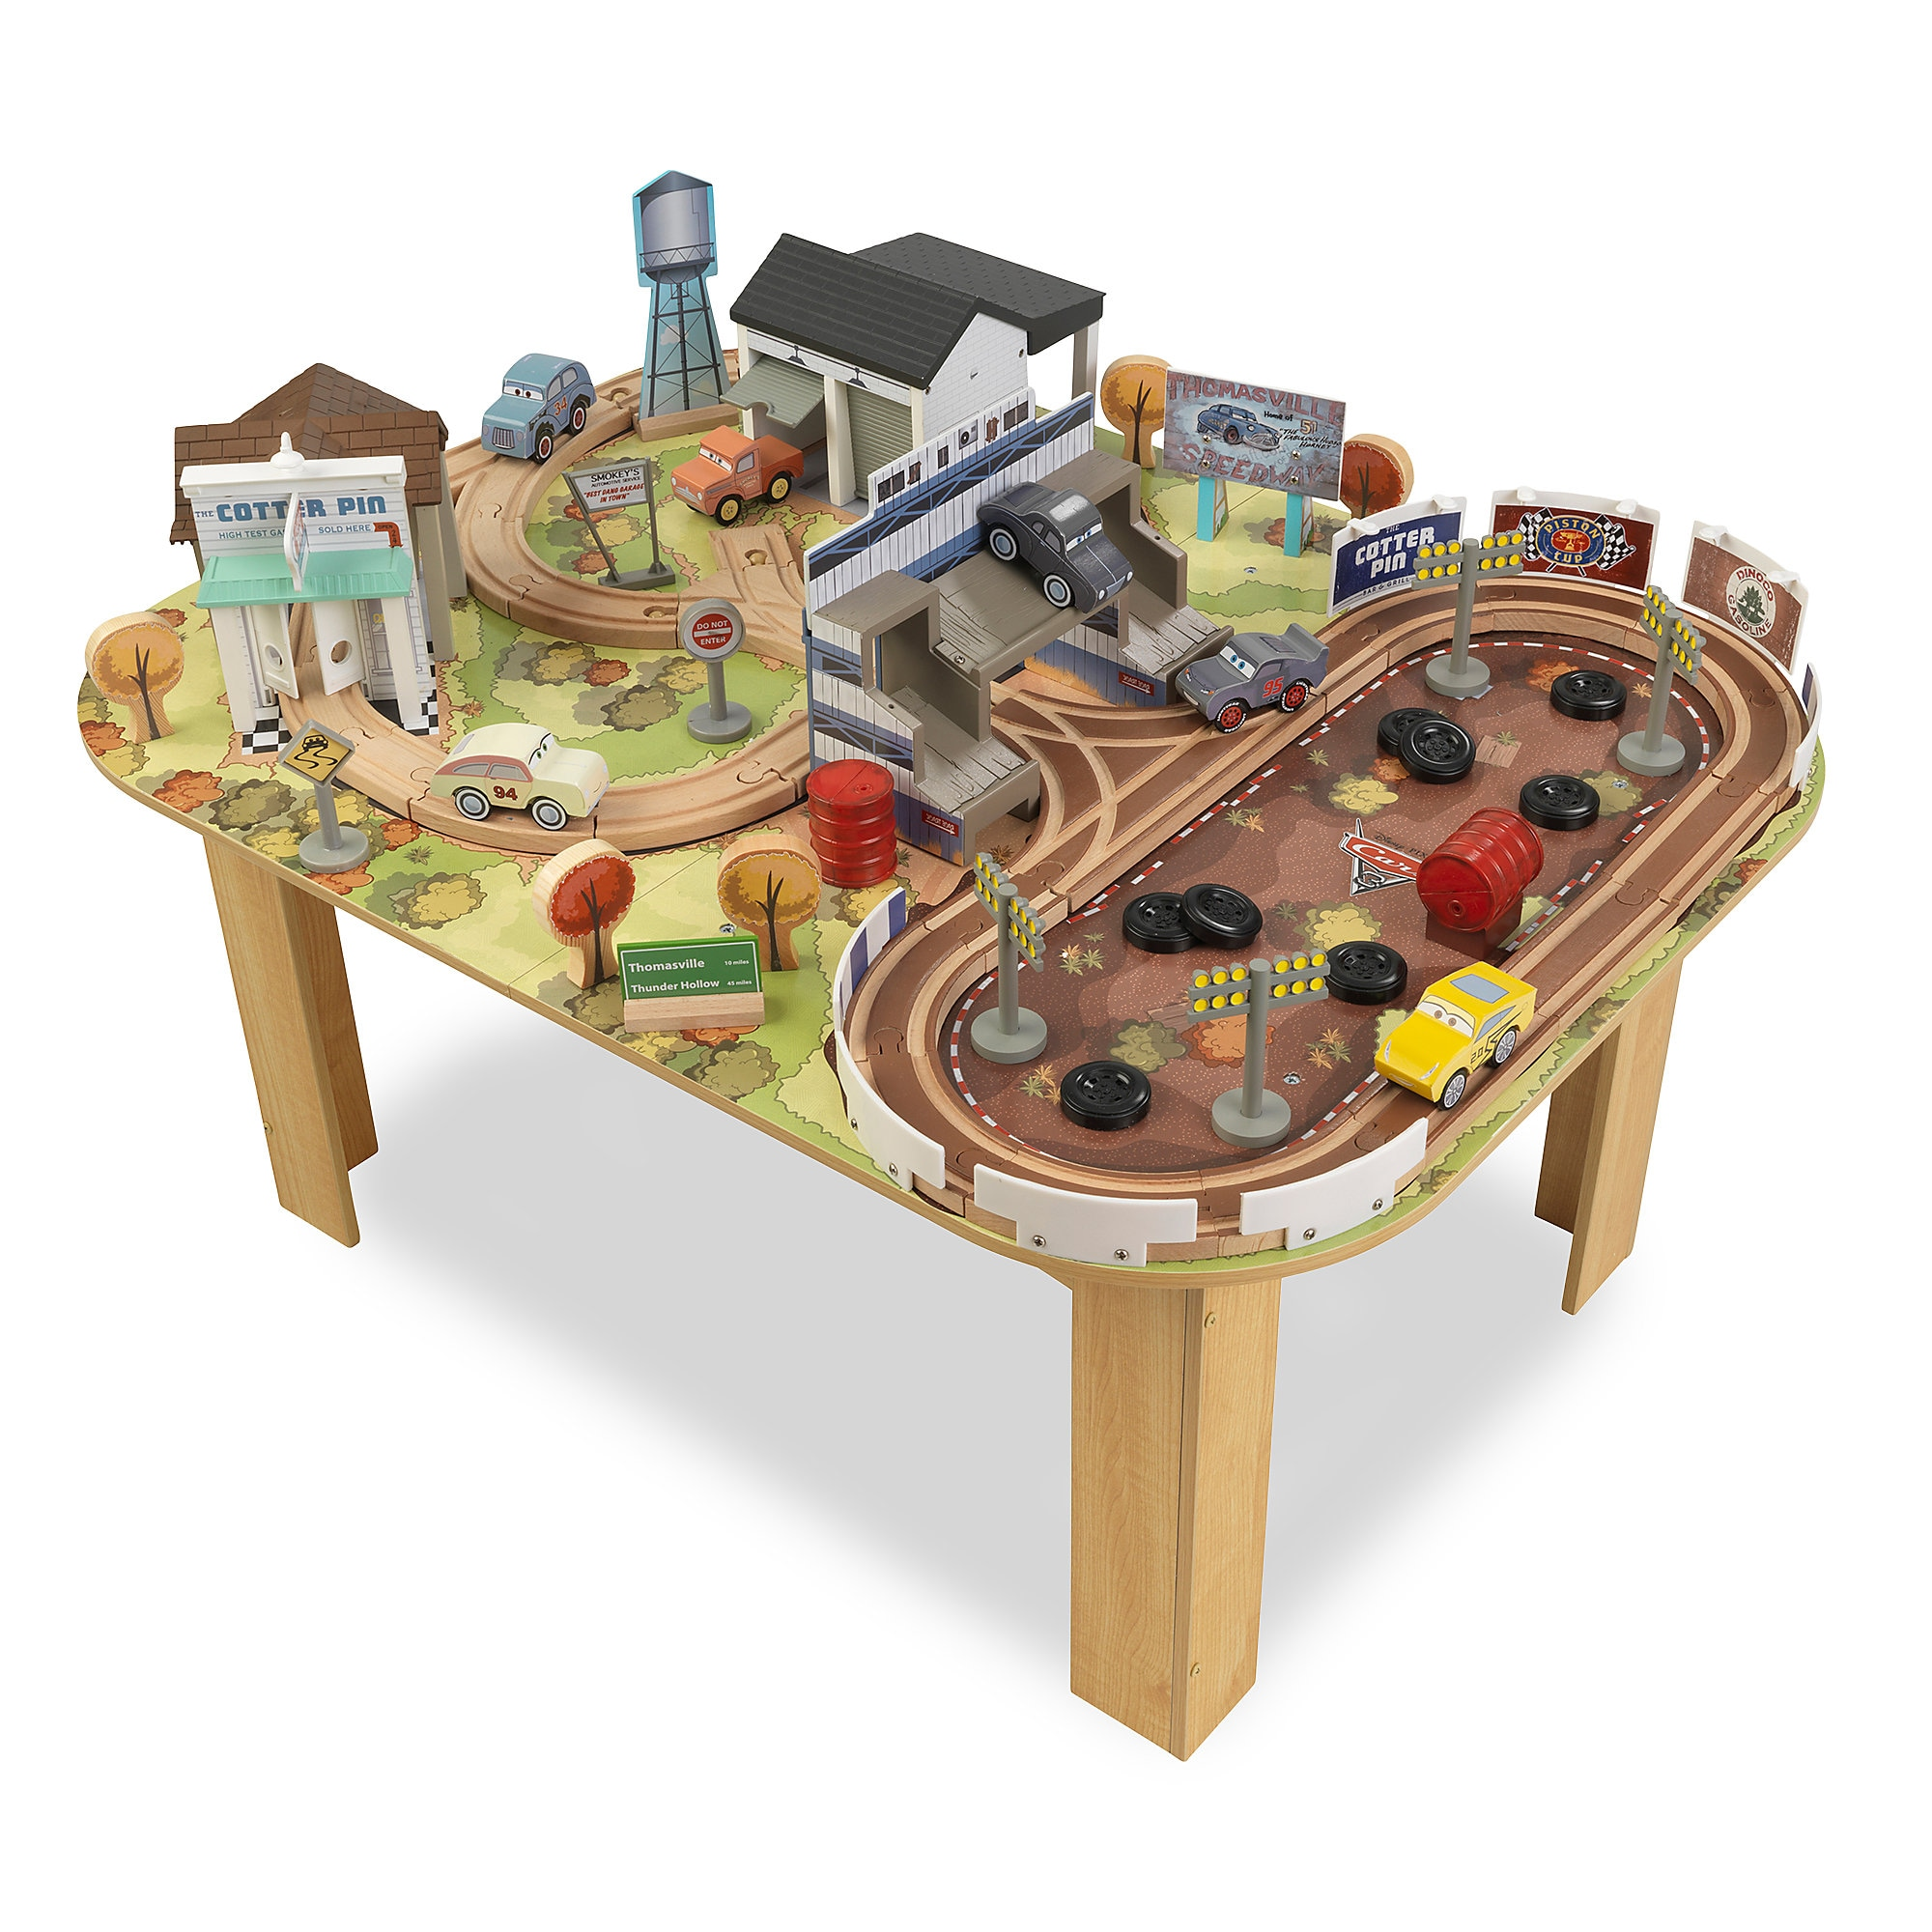 Product Image Of Cars 3 Thomasville Track Set And Table By KidKraft # 1